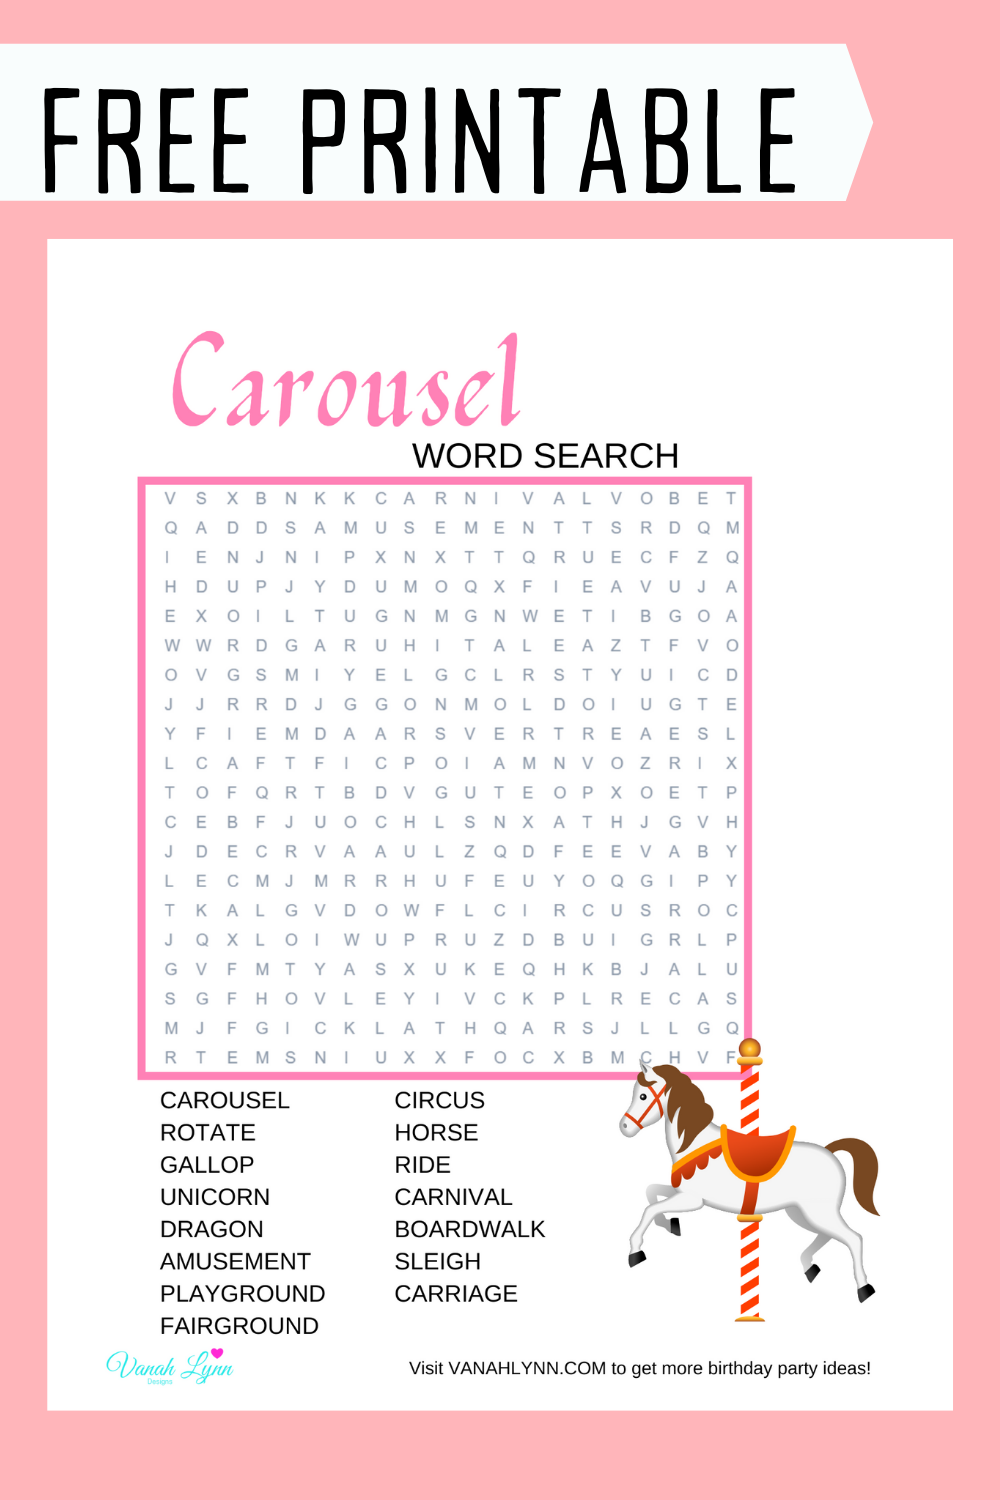 free download: carousel word puzzle for kids party